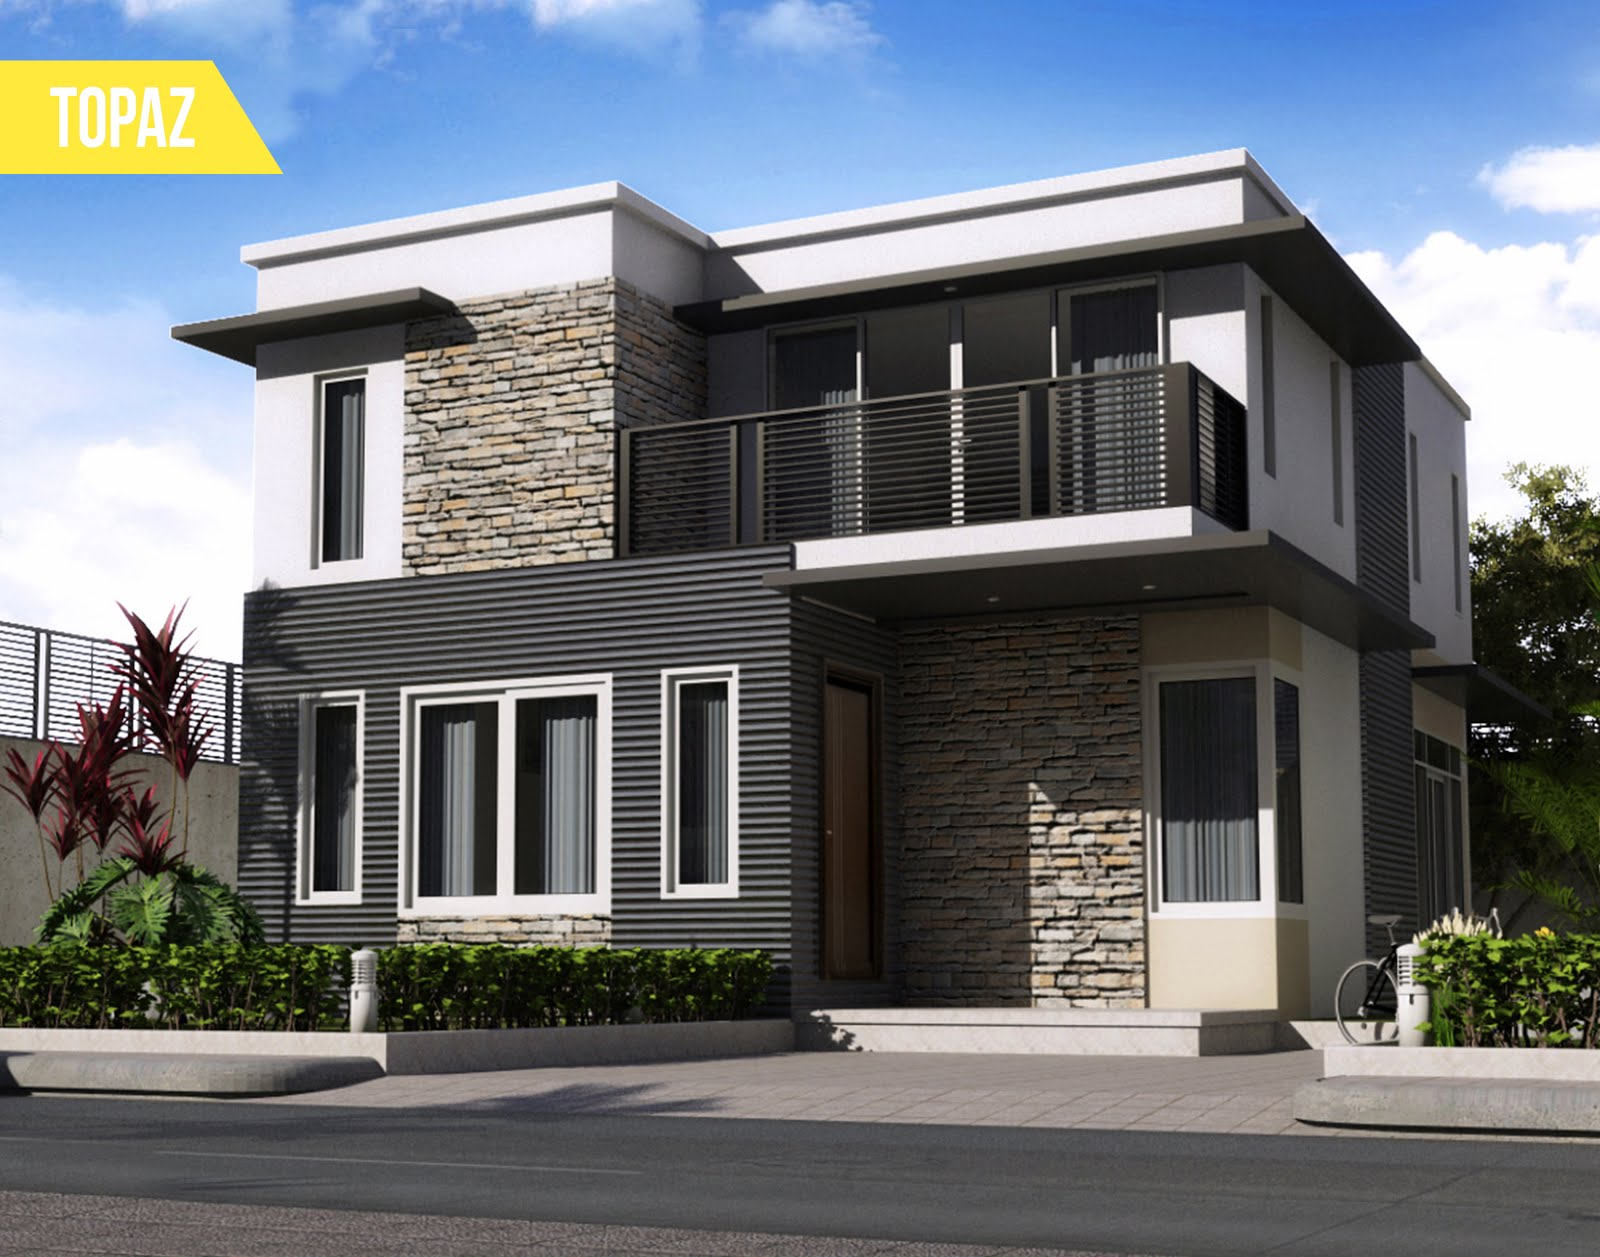 A Smart Philippine House Builder: The Number One Question ...